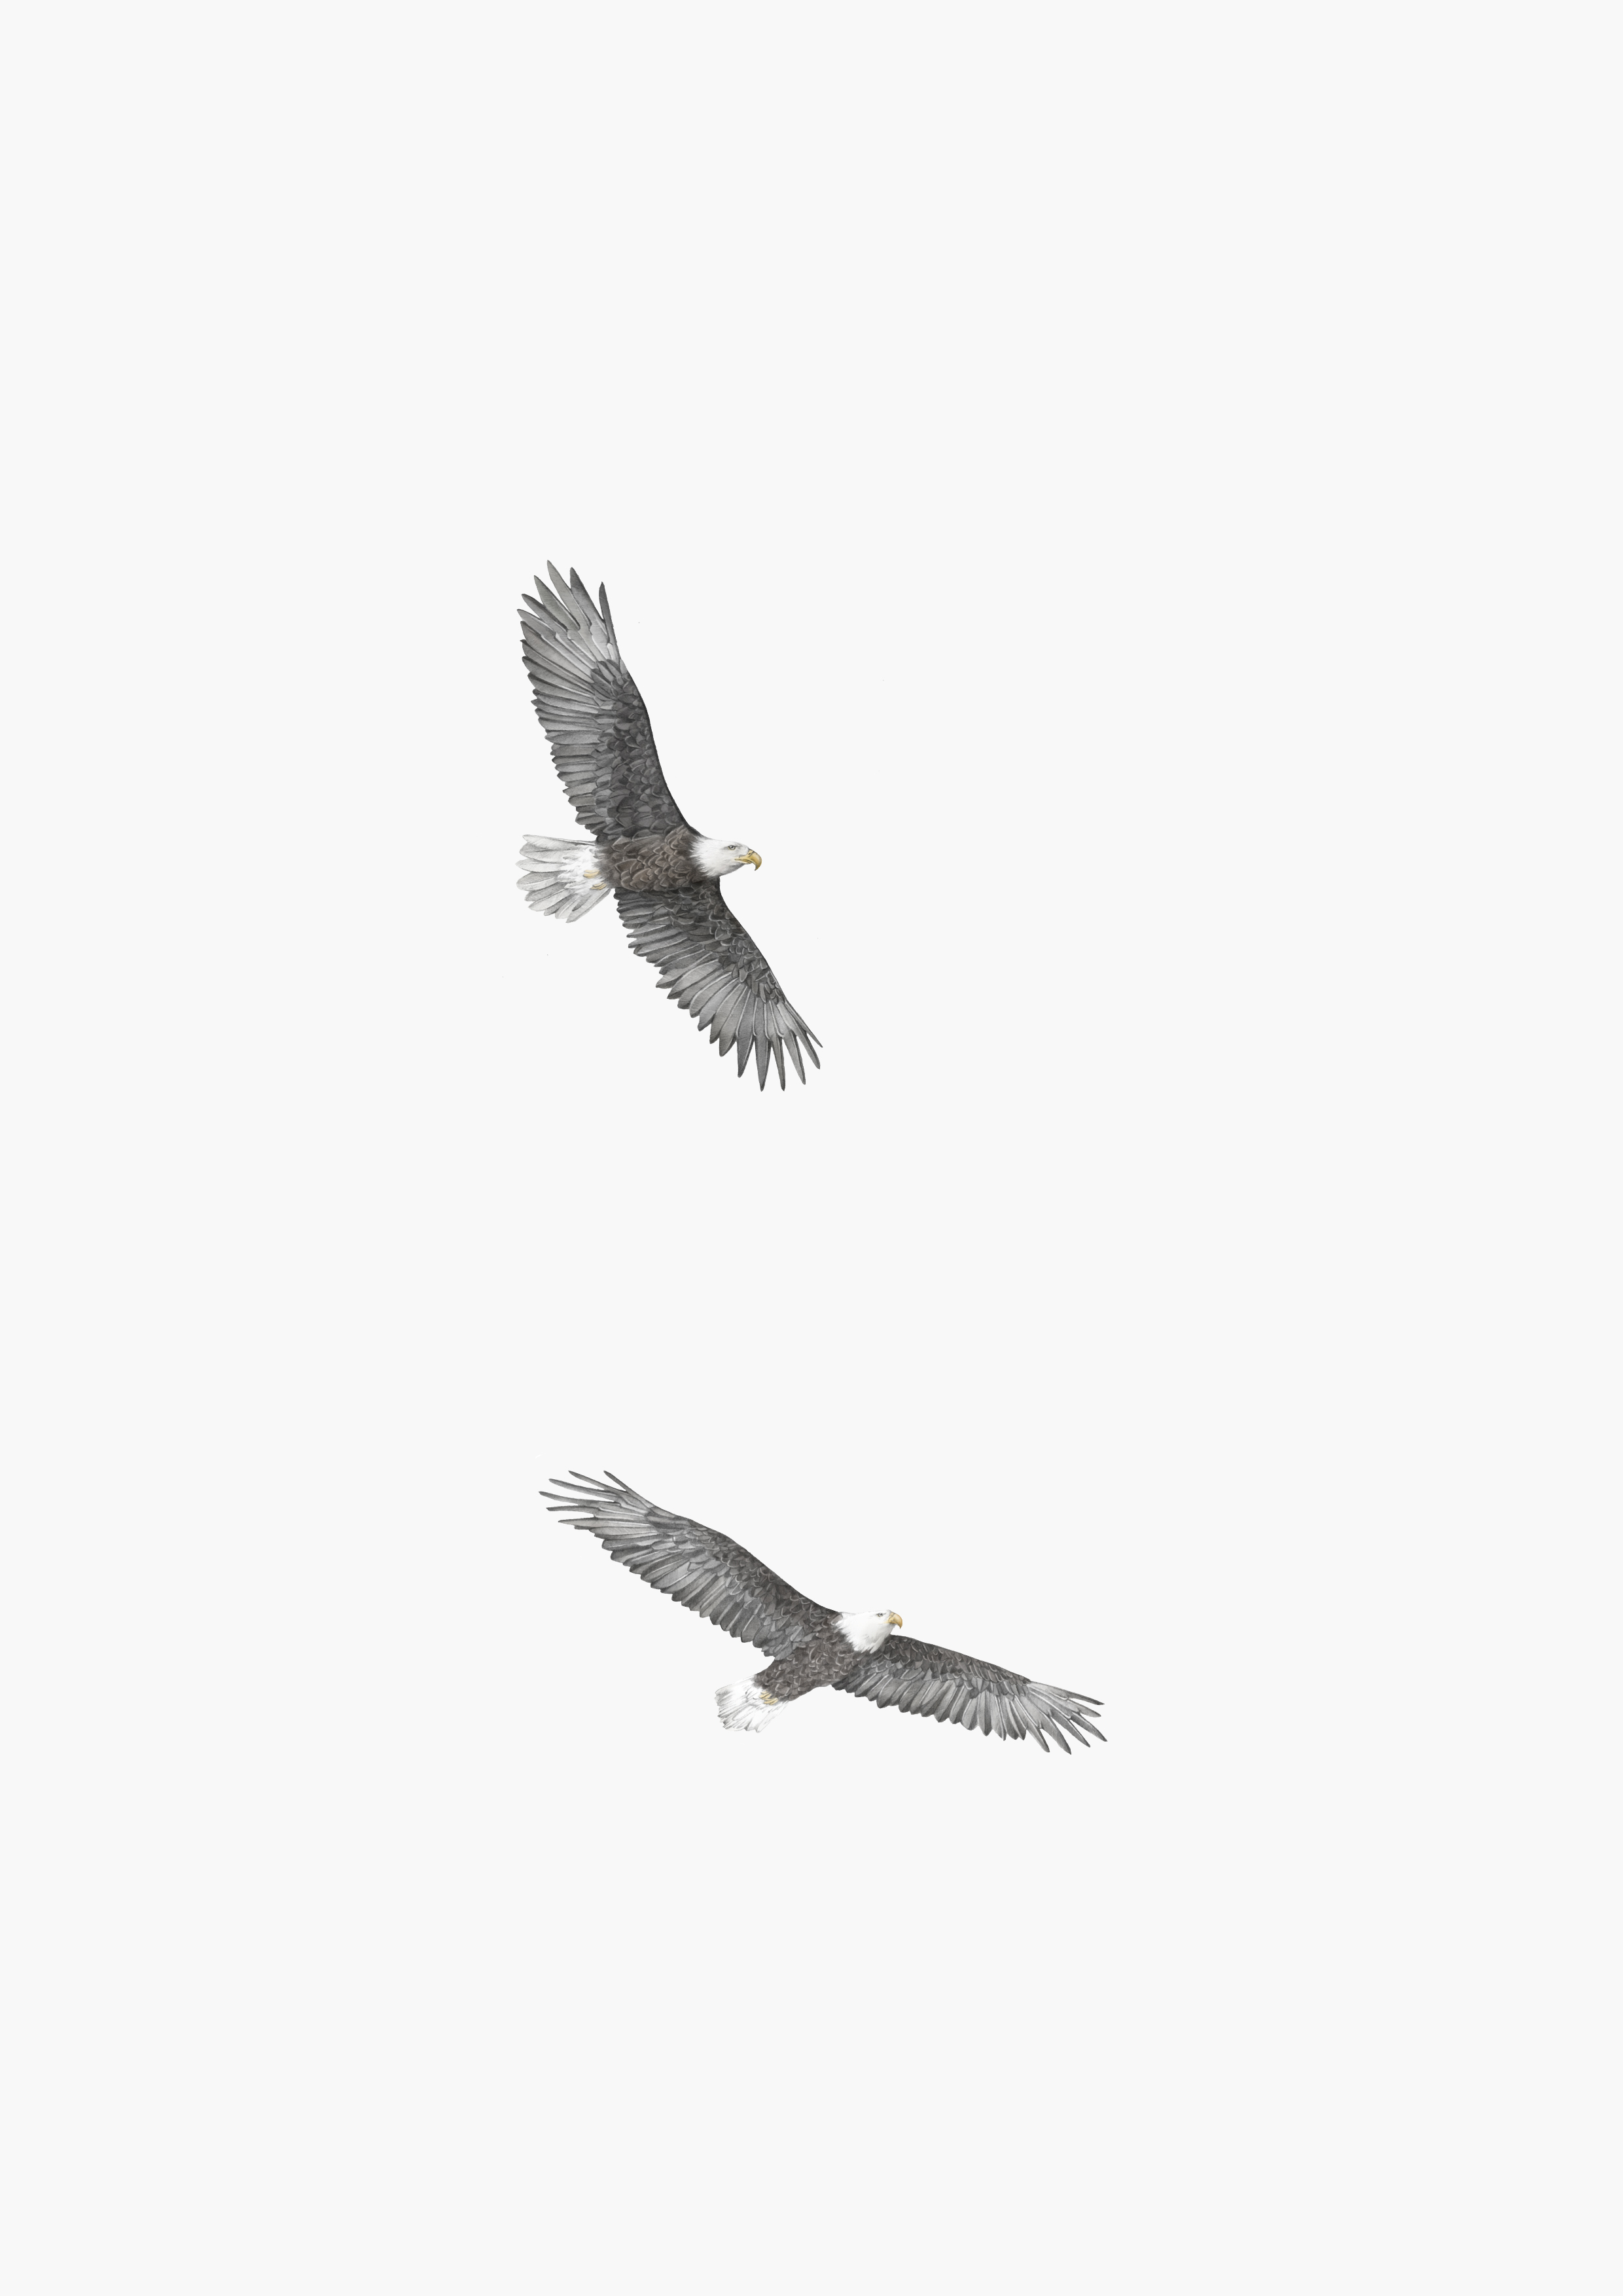 eagles a4 off white background.jpg